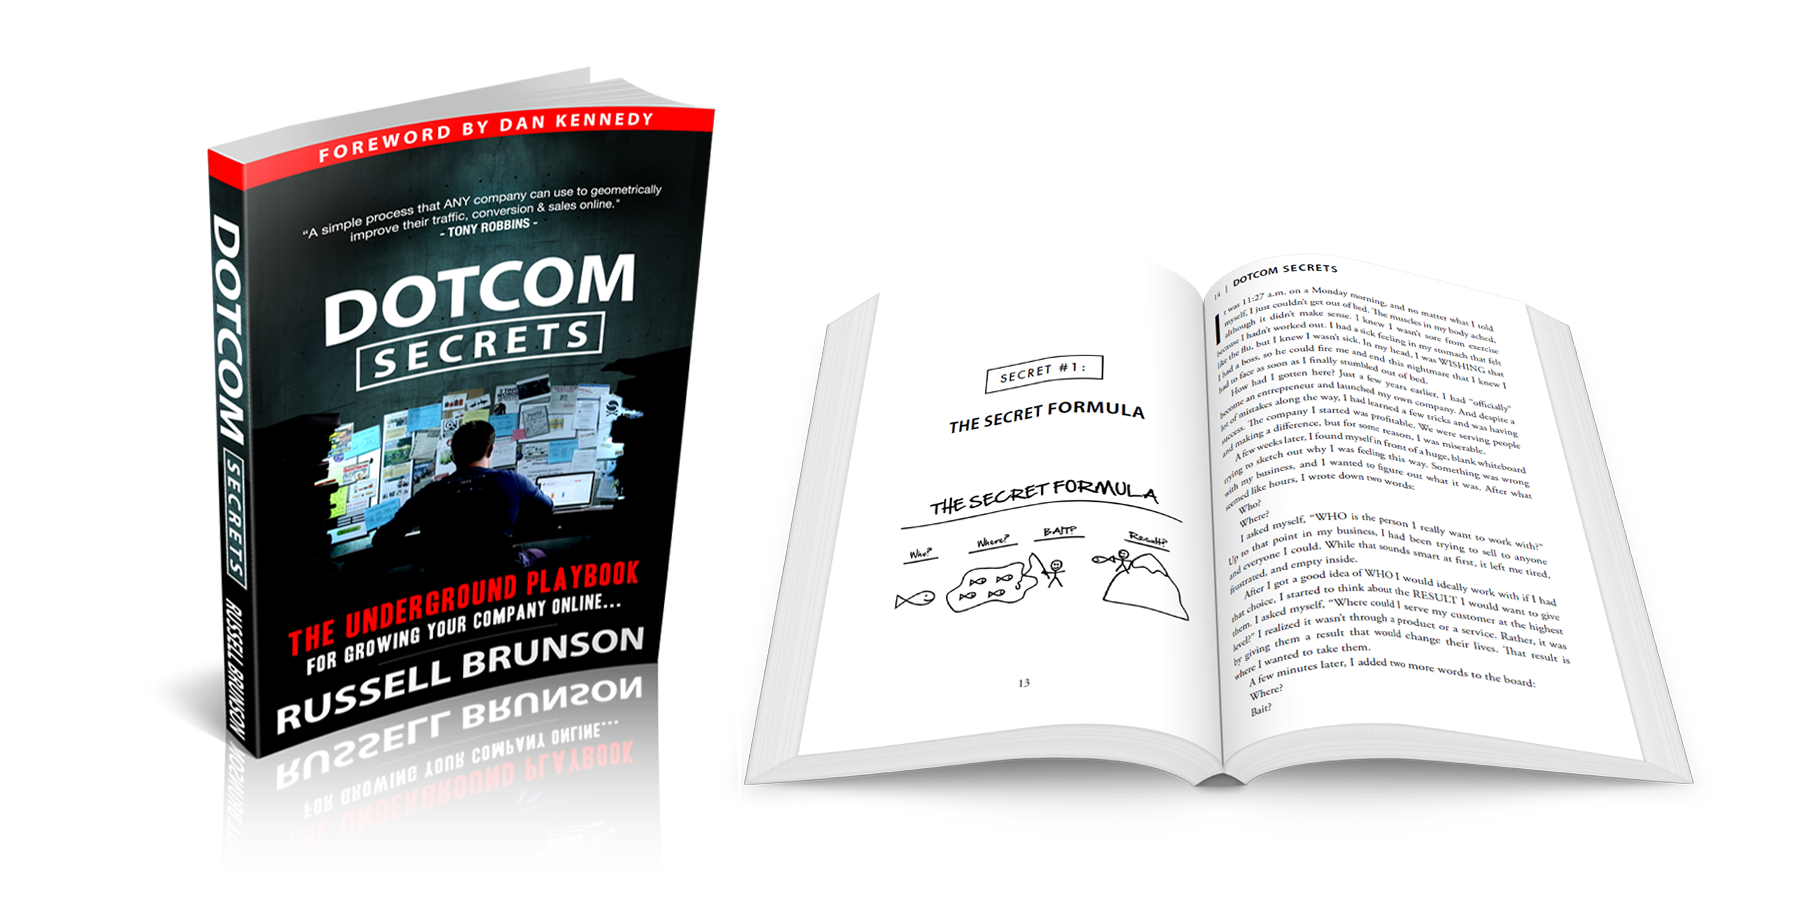 Get your FREE DotCom Secrets Book